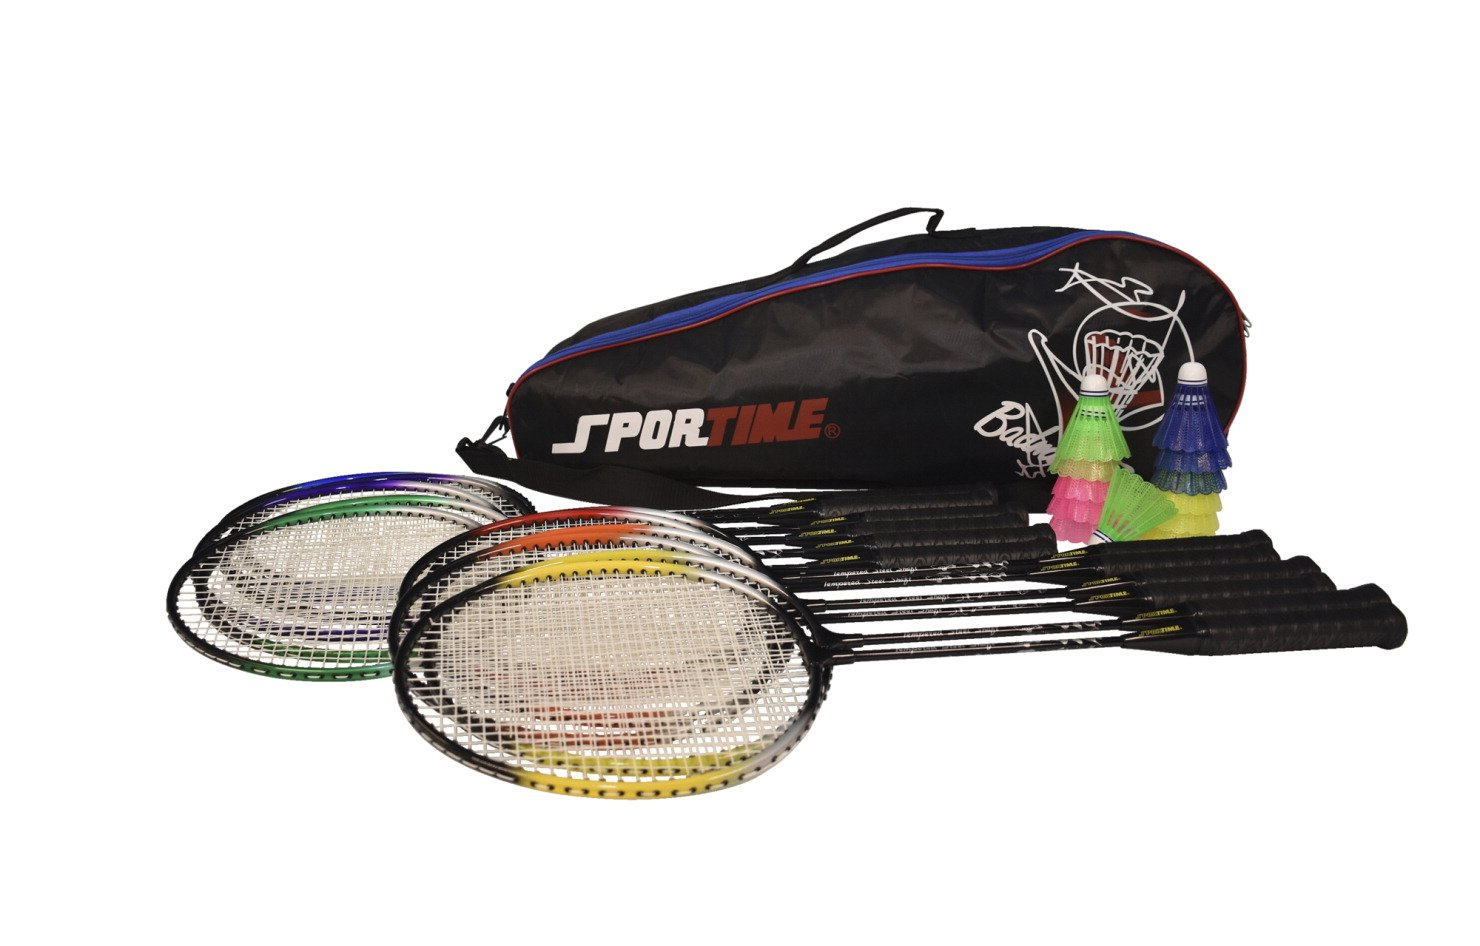 Sportime School Badminton Set - Includes 12 Racquets, 12 Shuttlecocks and Carrying Bag by Sportime (Image #2)